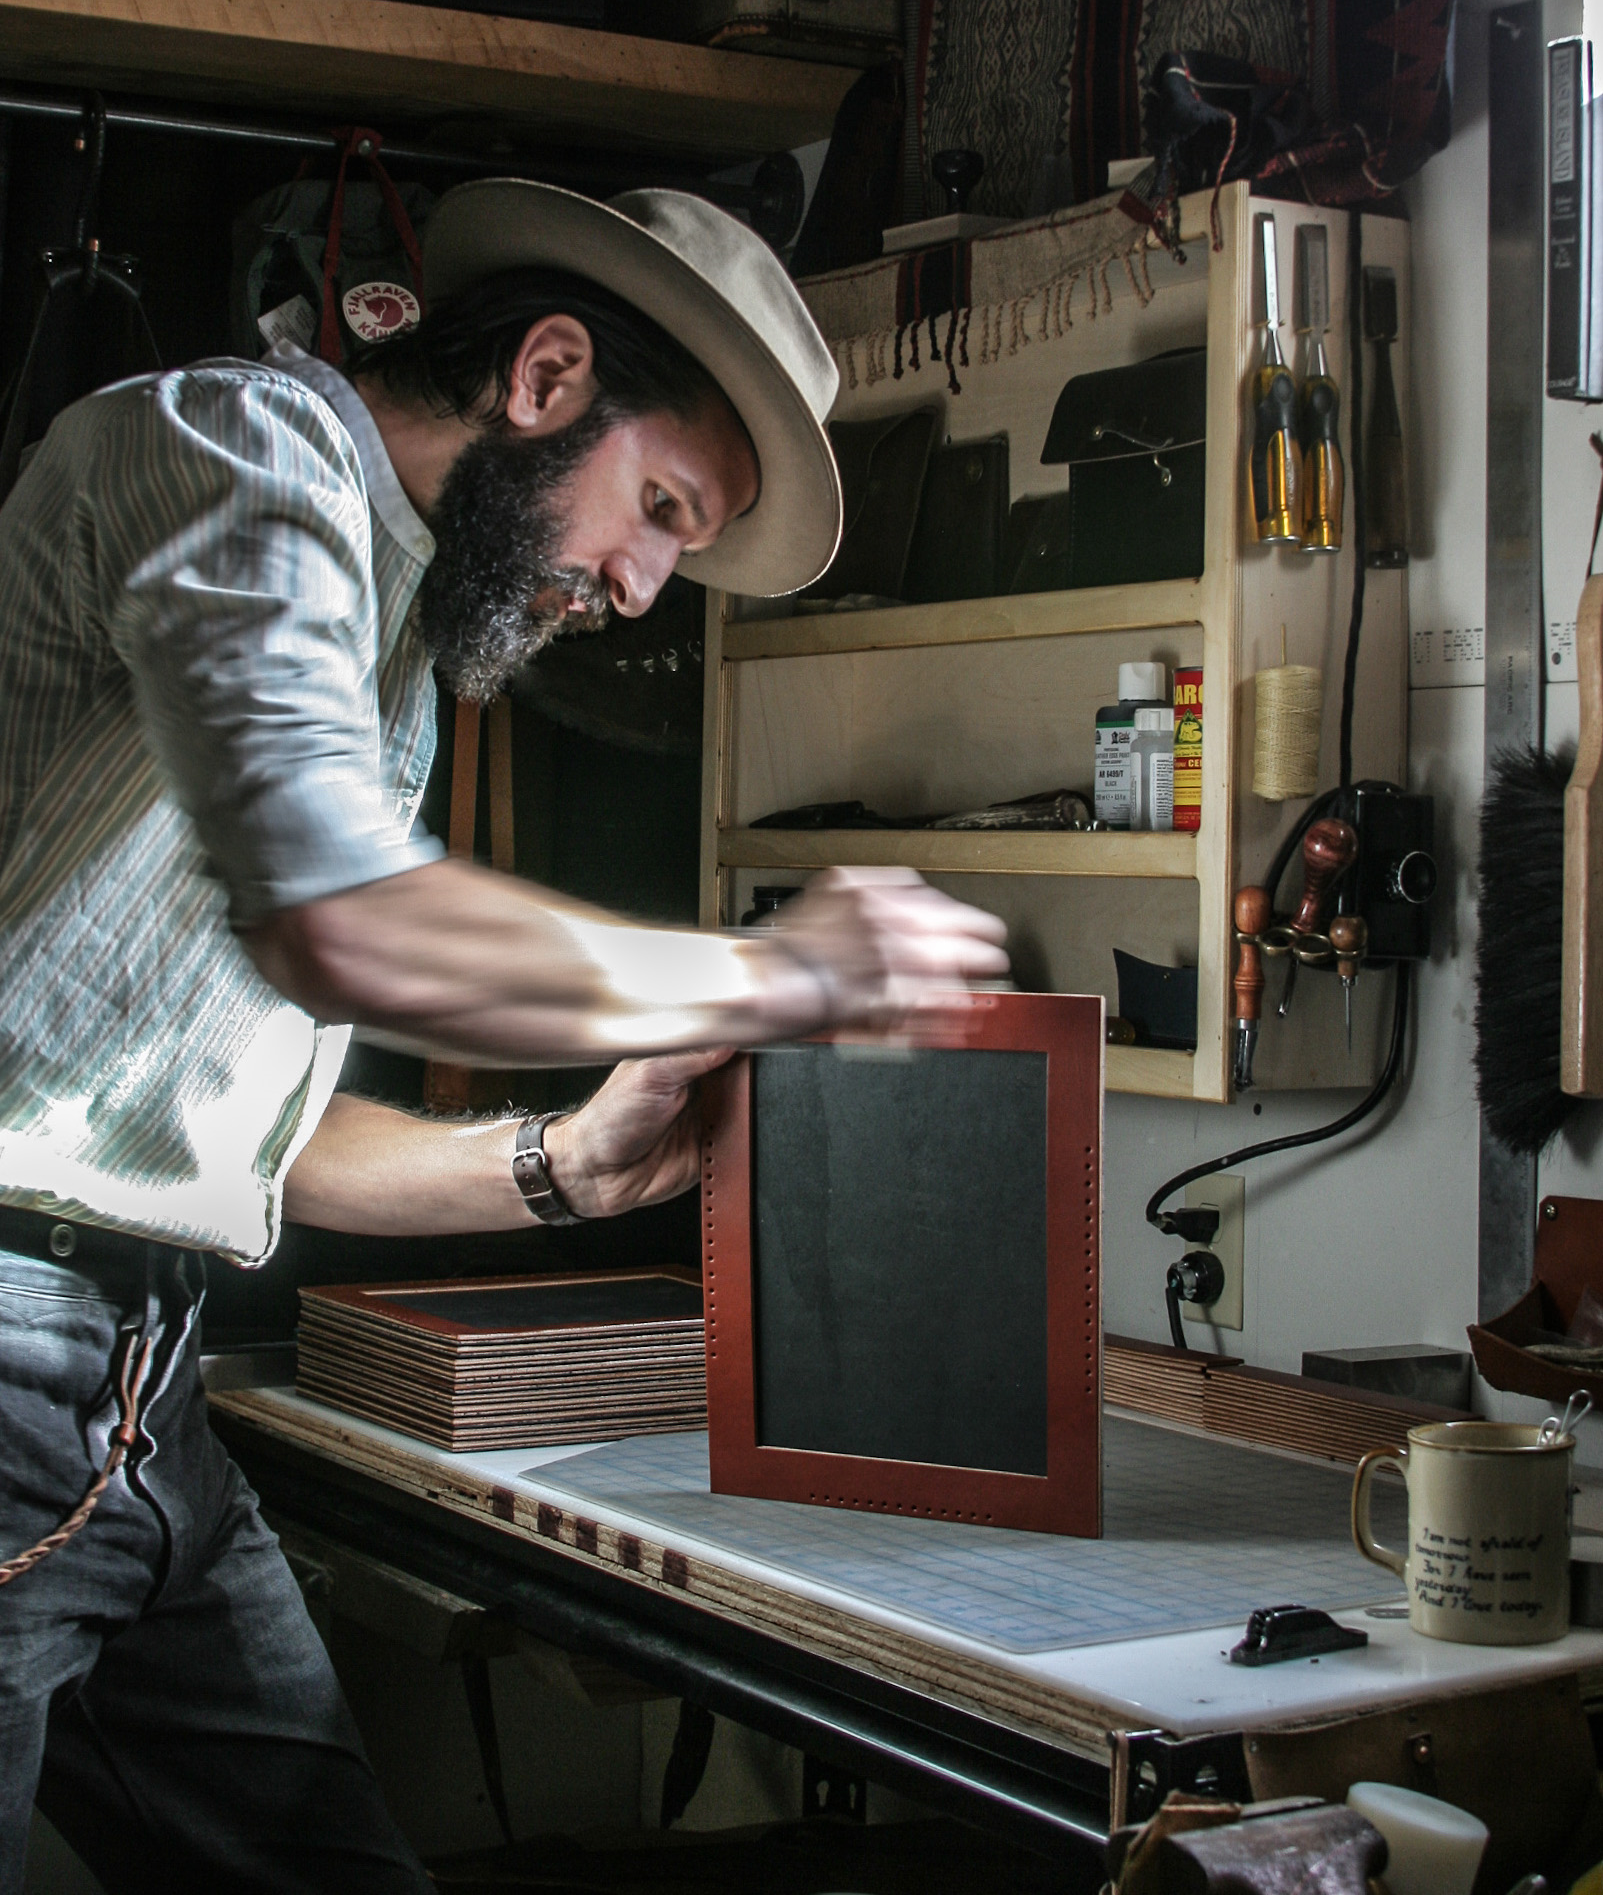 Live and Learn - Here, I'm burnishing up the edges on a set of large 8x10 leather pictures frames I designed, which were picked up by Filson in the 2015 Fall season.  I loved the look of these frames, but they would have been better designed to hang from a wall, rather than kickstand on a desk.  Live and learn, and that's the game.  Next time!